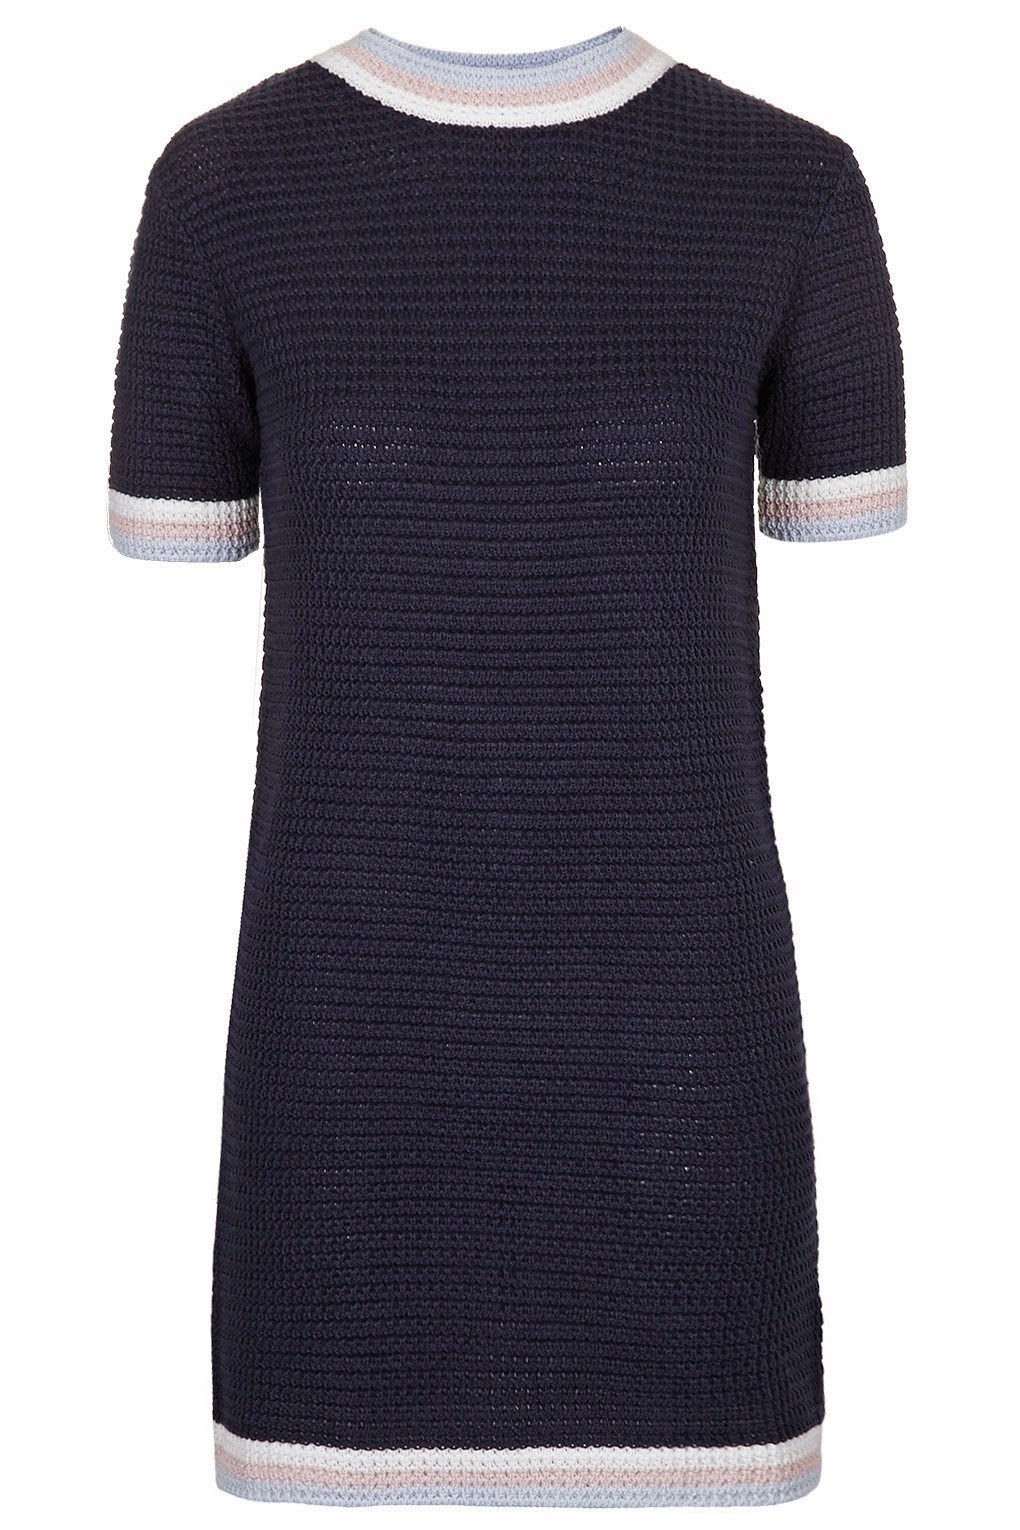 navy crochet dress,